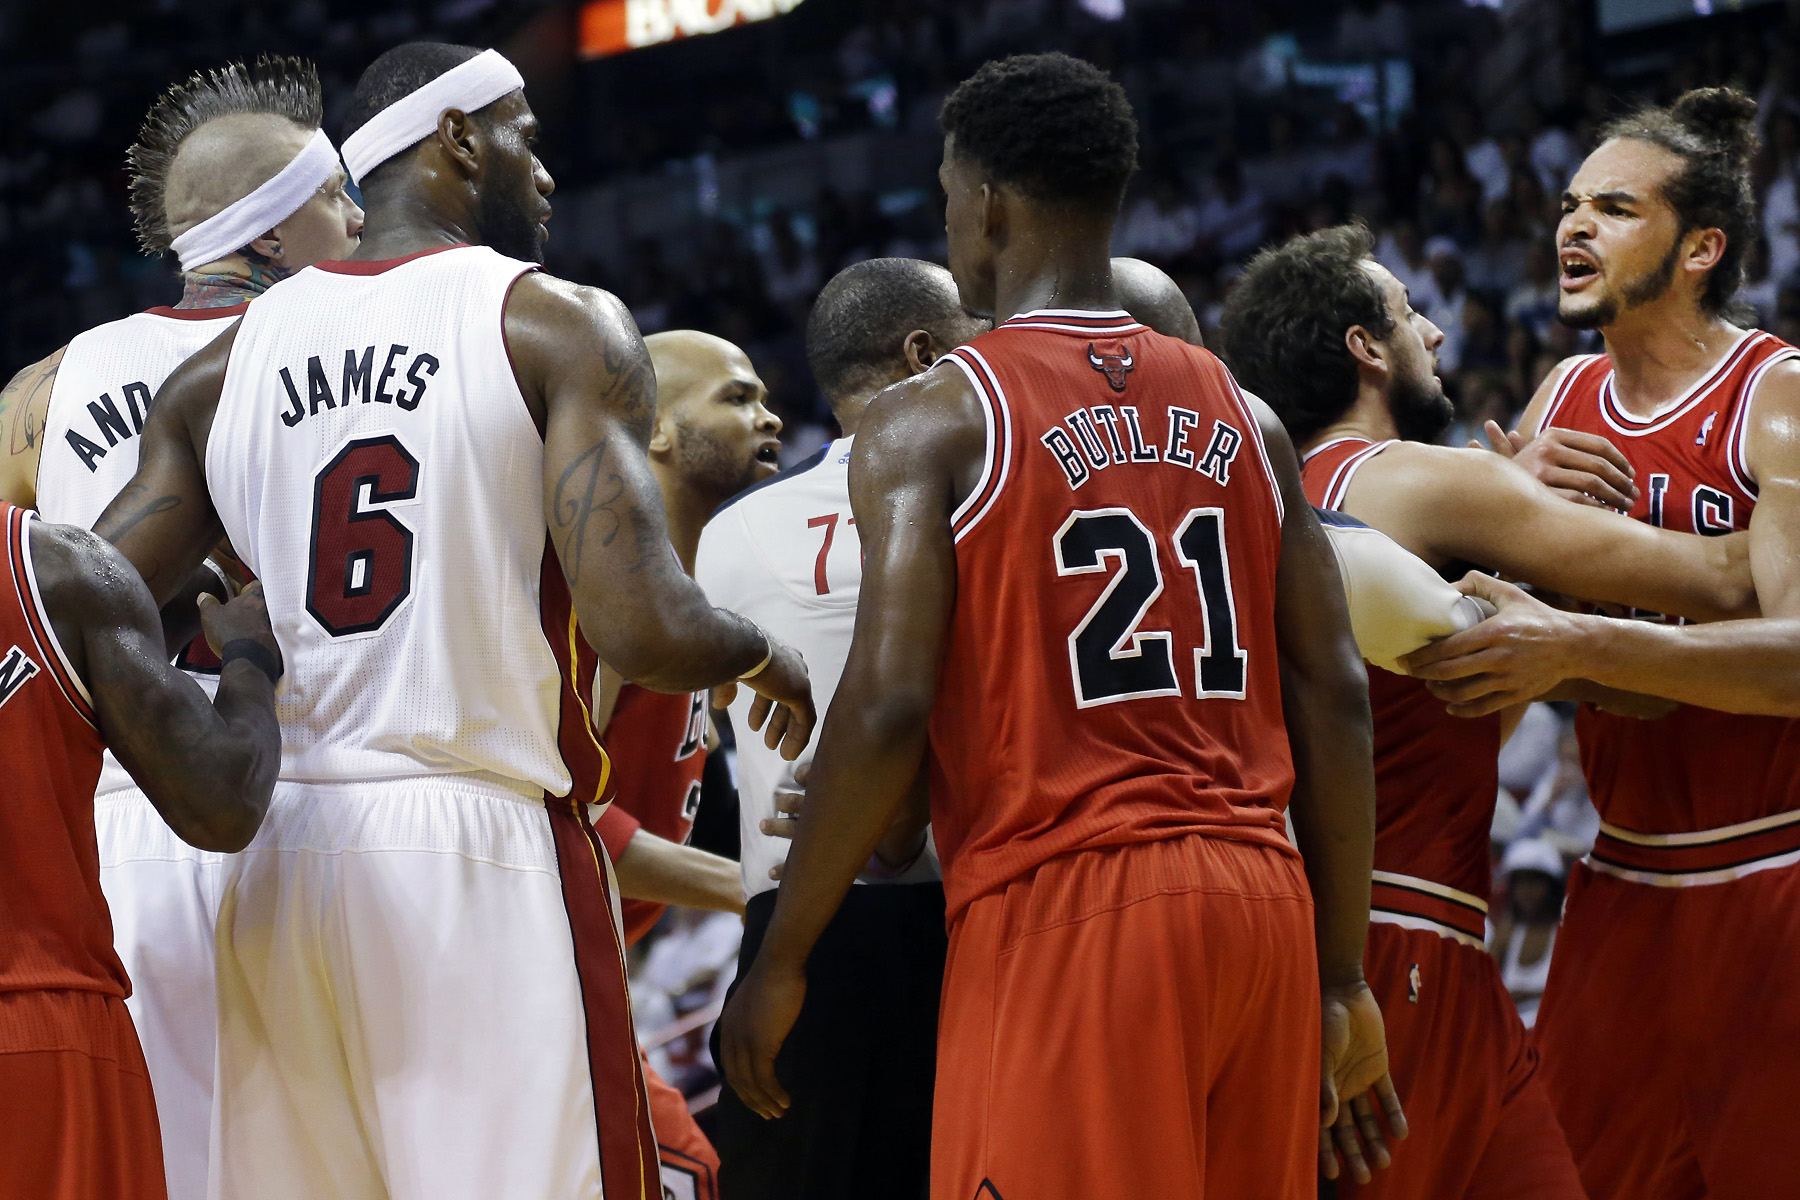 The Heat advanced past the Bulls in Round 2, but not before things got chippy.